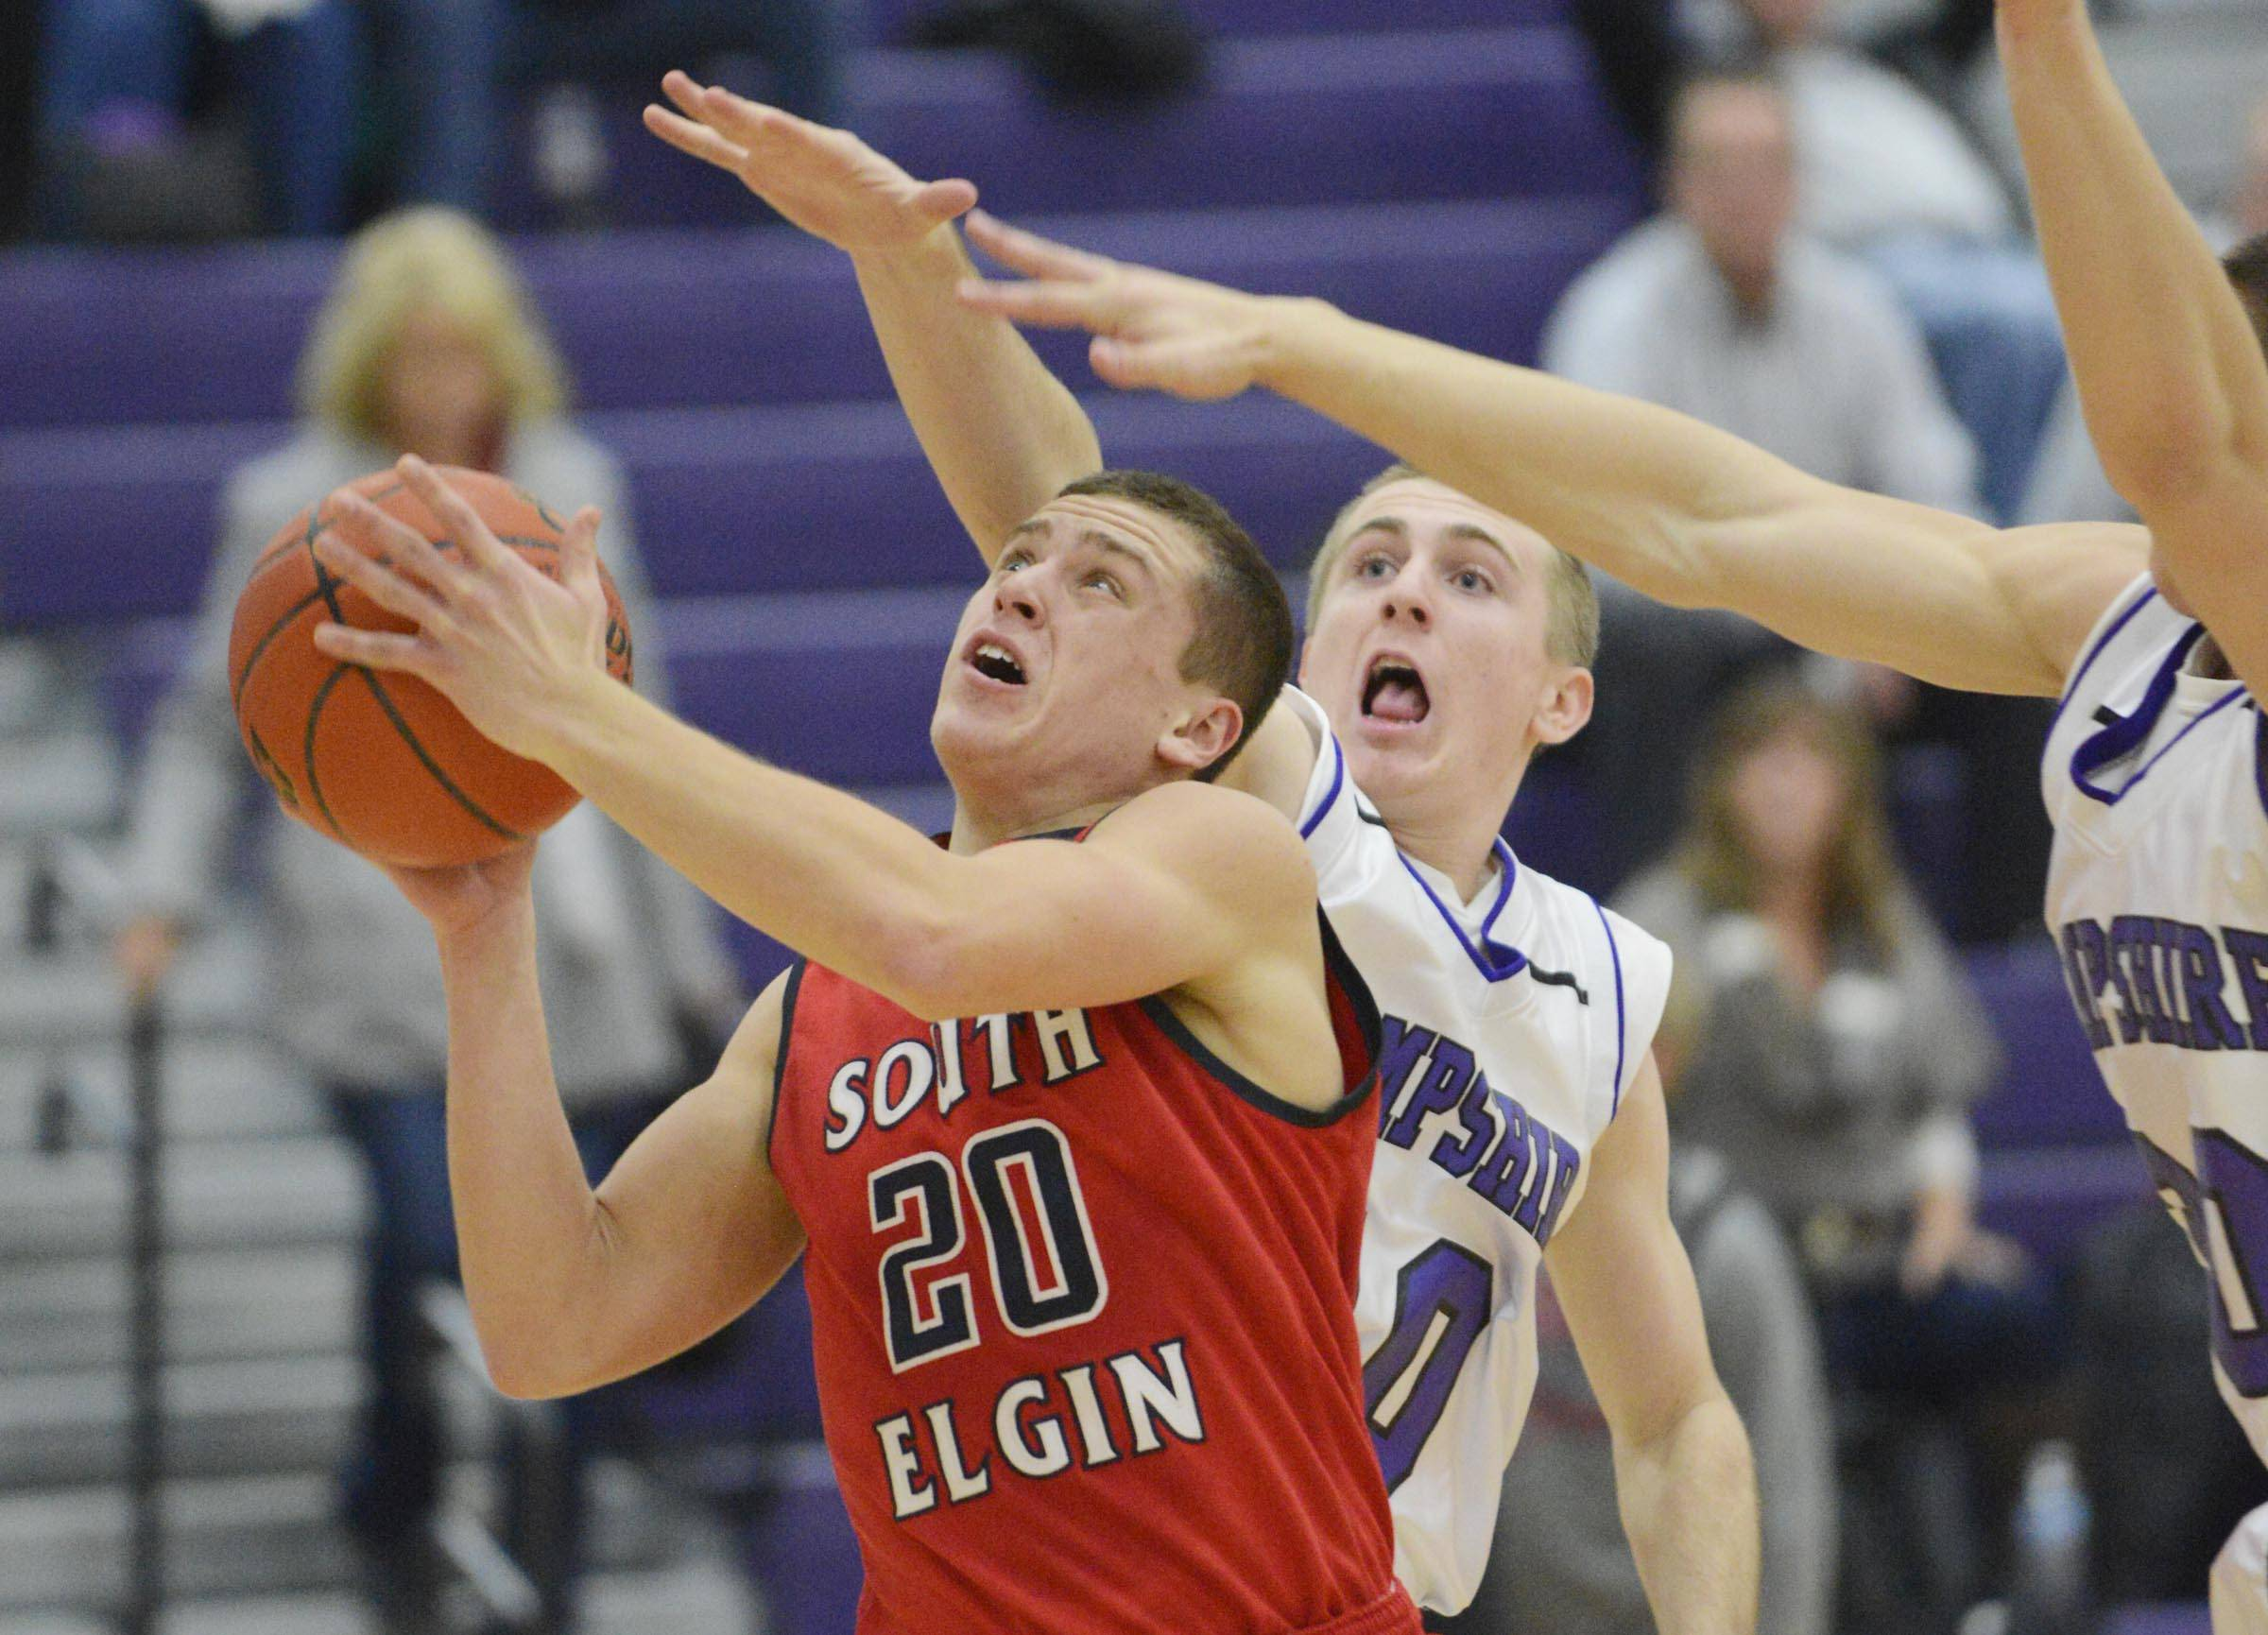 South Elgin's Matt McClure cuts through the defense of Hampshire's Drew Doran and Austin Spaeth.